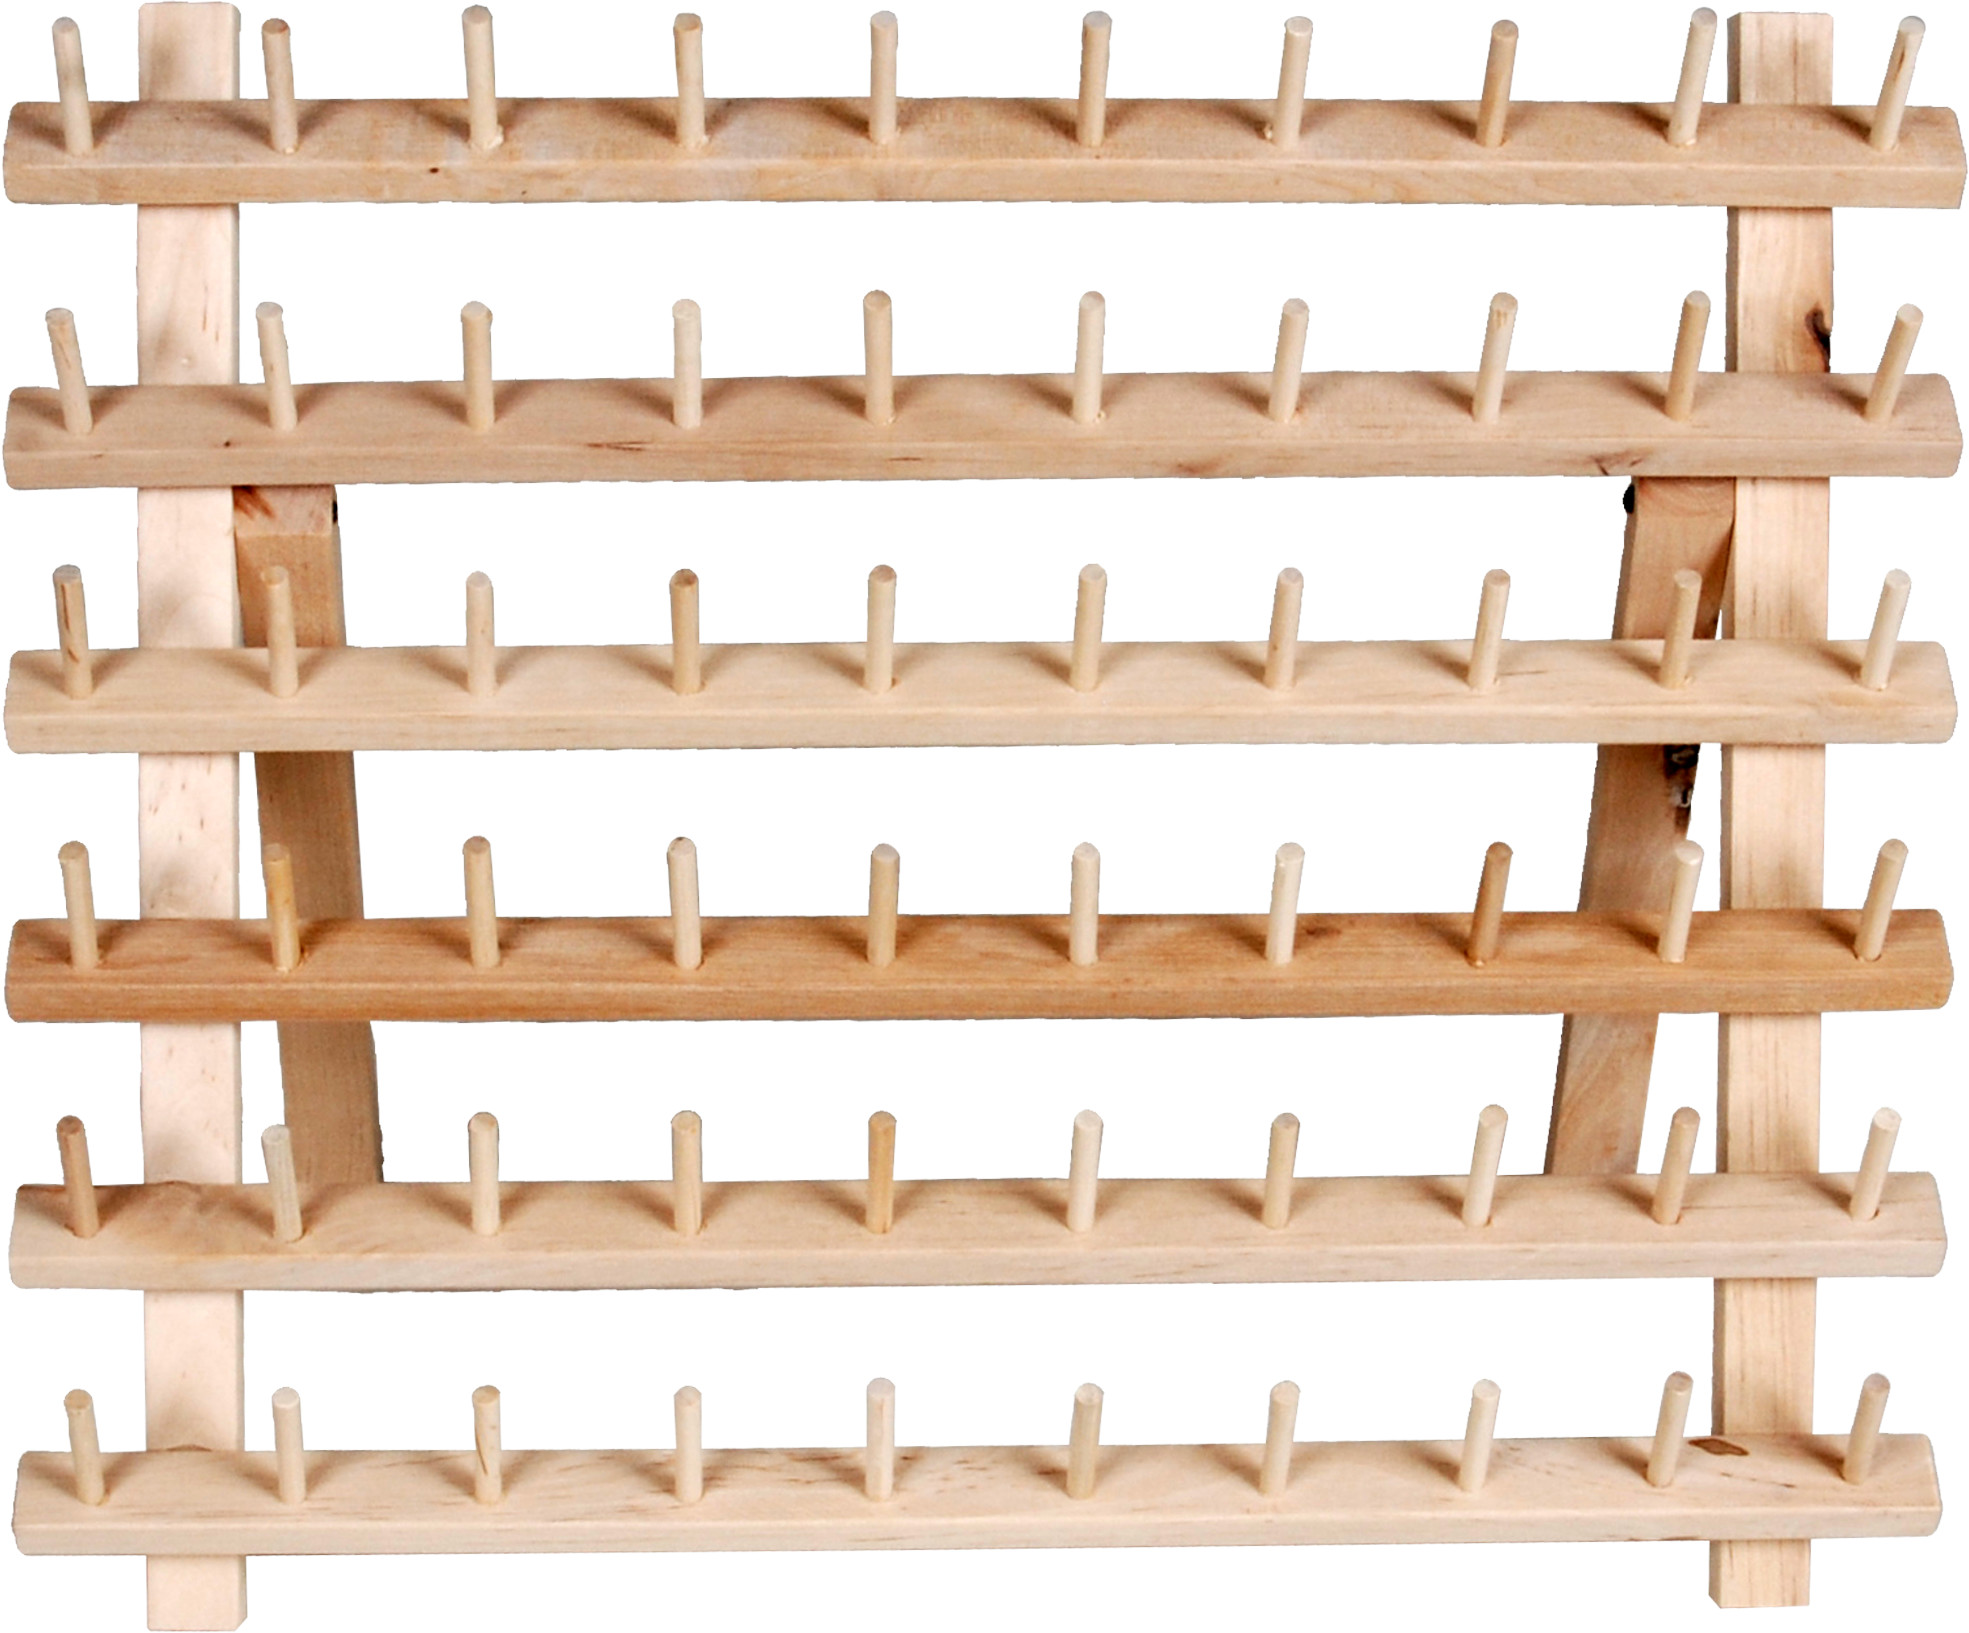 dritz wooden thread rack for organization 60 spools craft and sewing